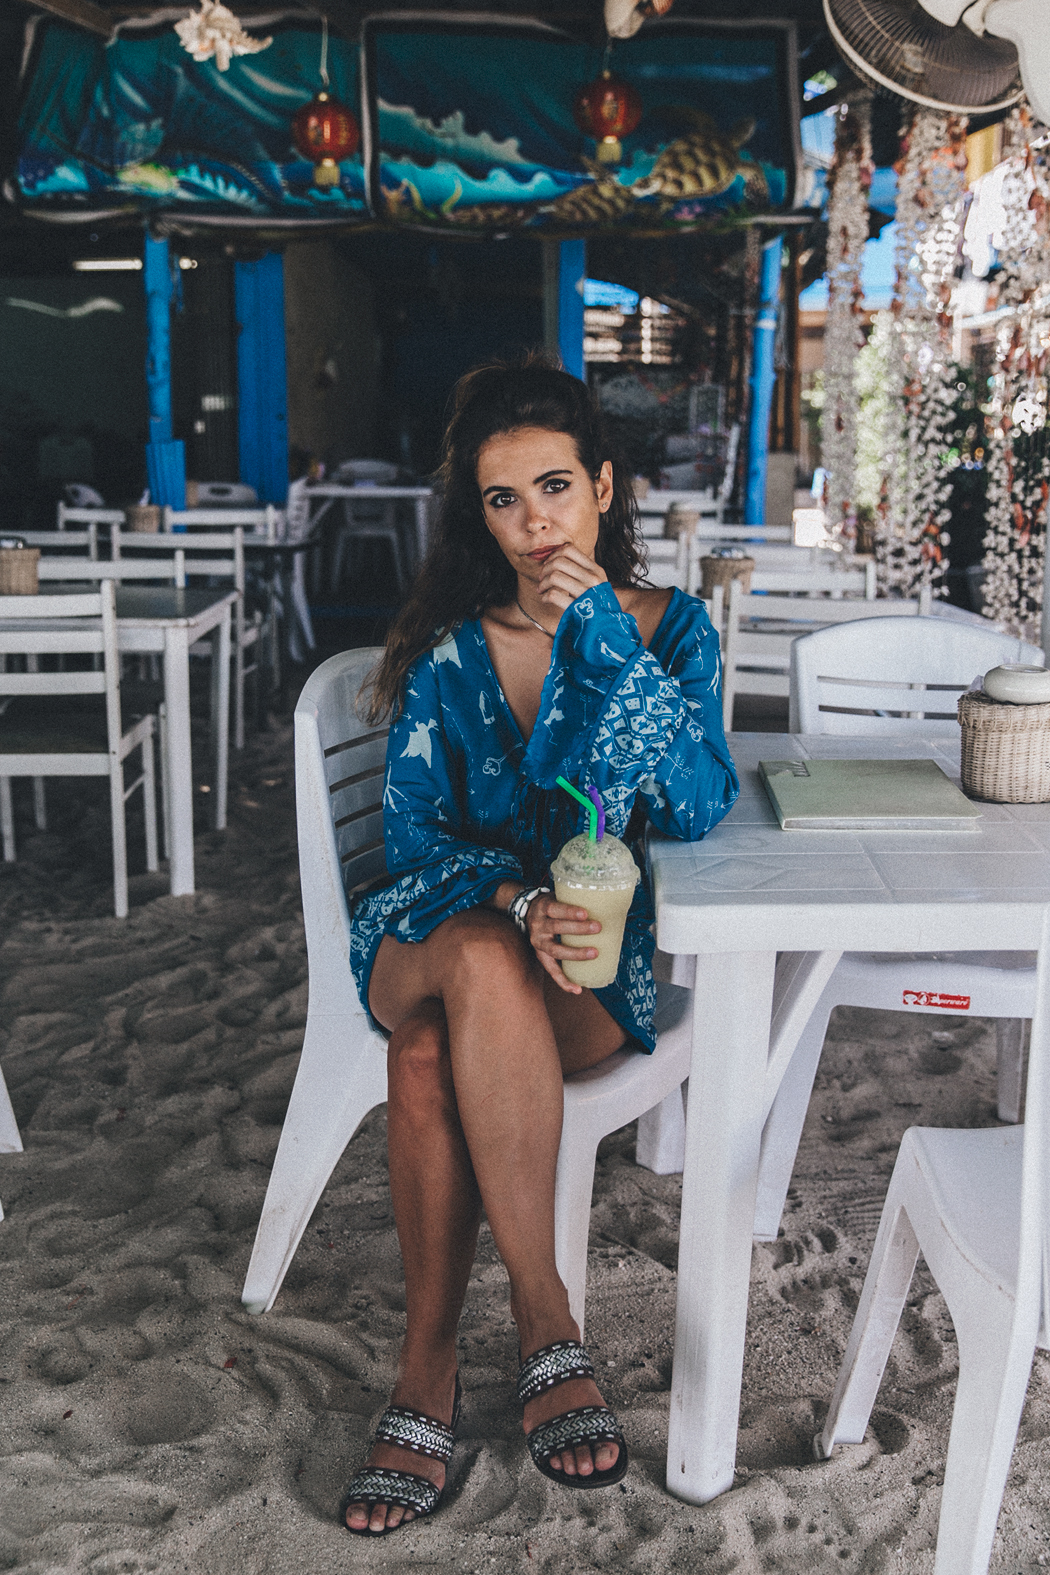 Bohemian_Bones_Dress-Revolve_Clothing-Layering_Necklace-Backpack-Thailand-Phi_Phi_Island-Summer_Look-Outfit-Beach-39